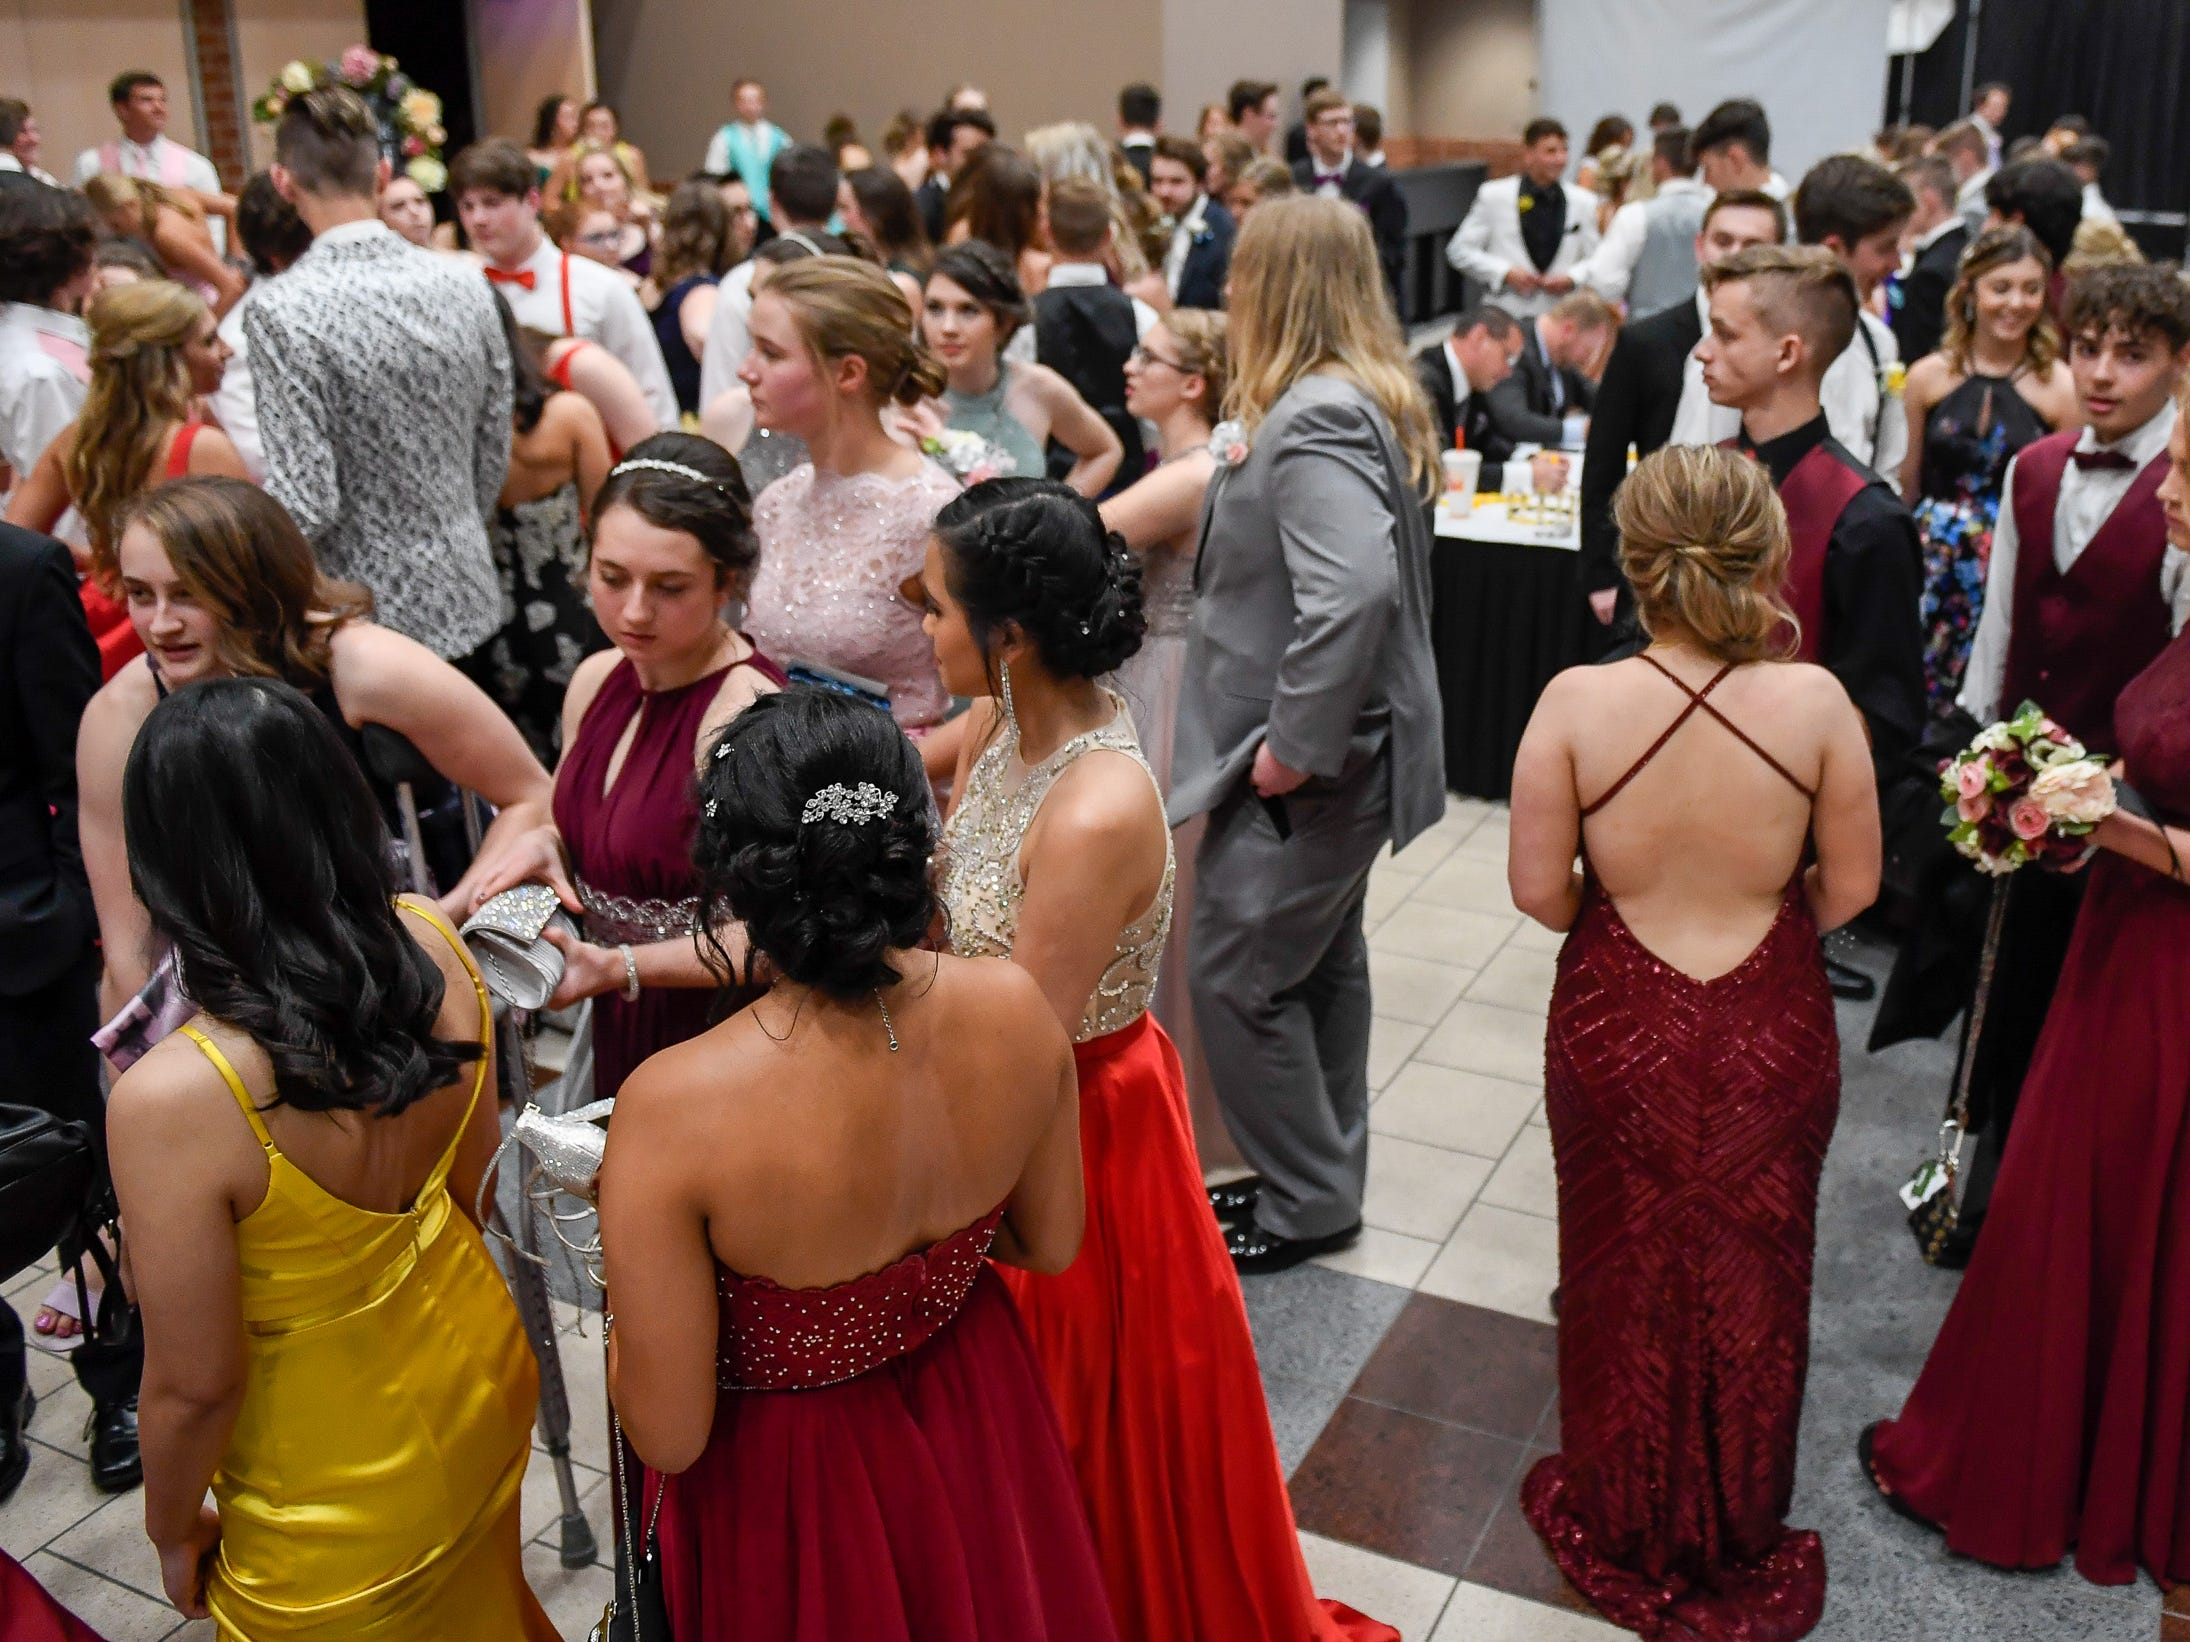 Couples gather in the lobby as they check into the Castle High School prom, held at the Old National Events Center Plaza Saturday, April 27, 2019.